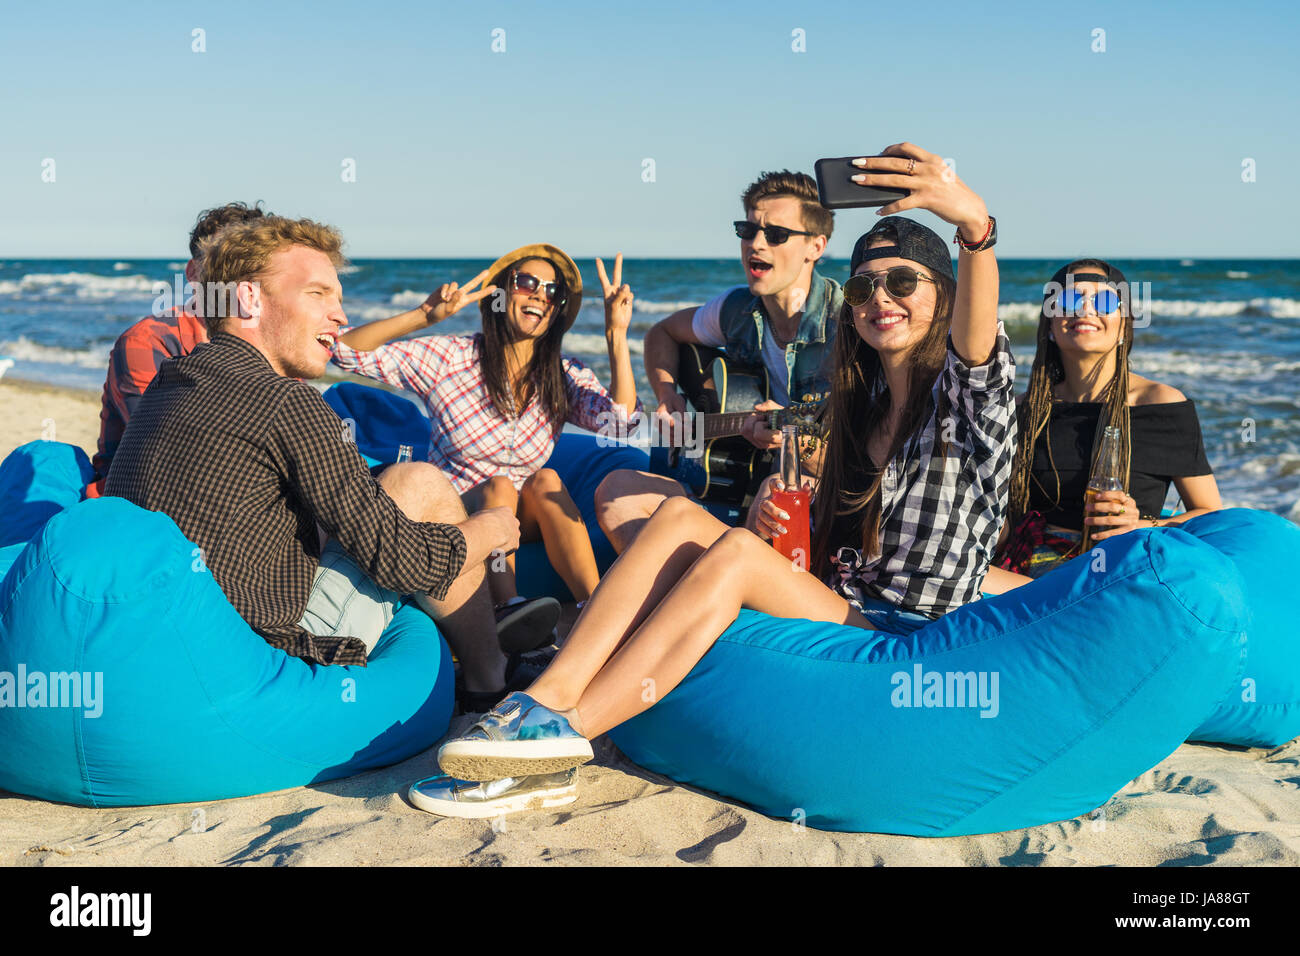 group of friends having fun at the beach - Stock Image